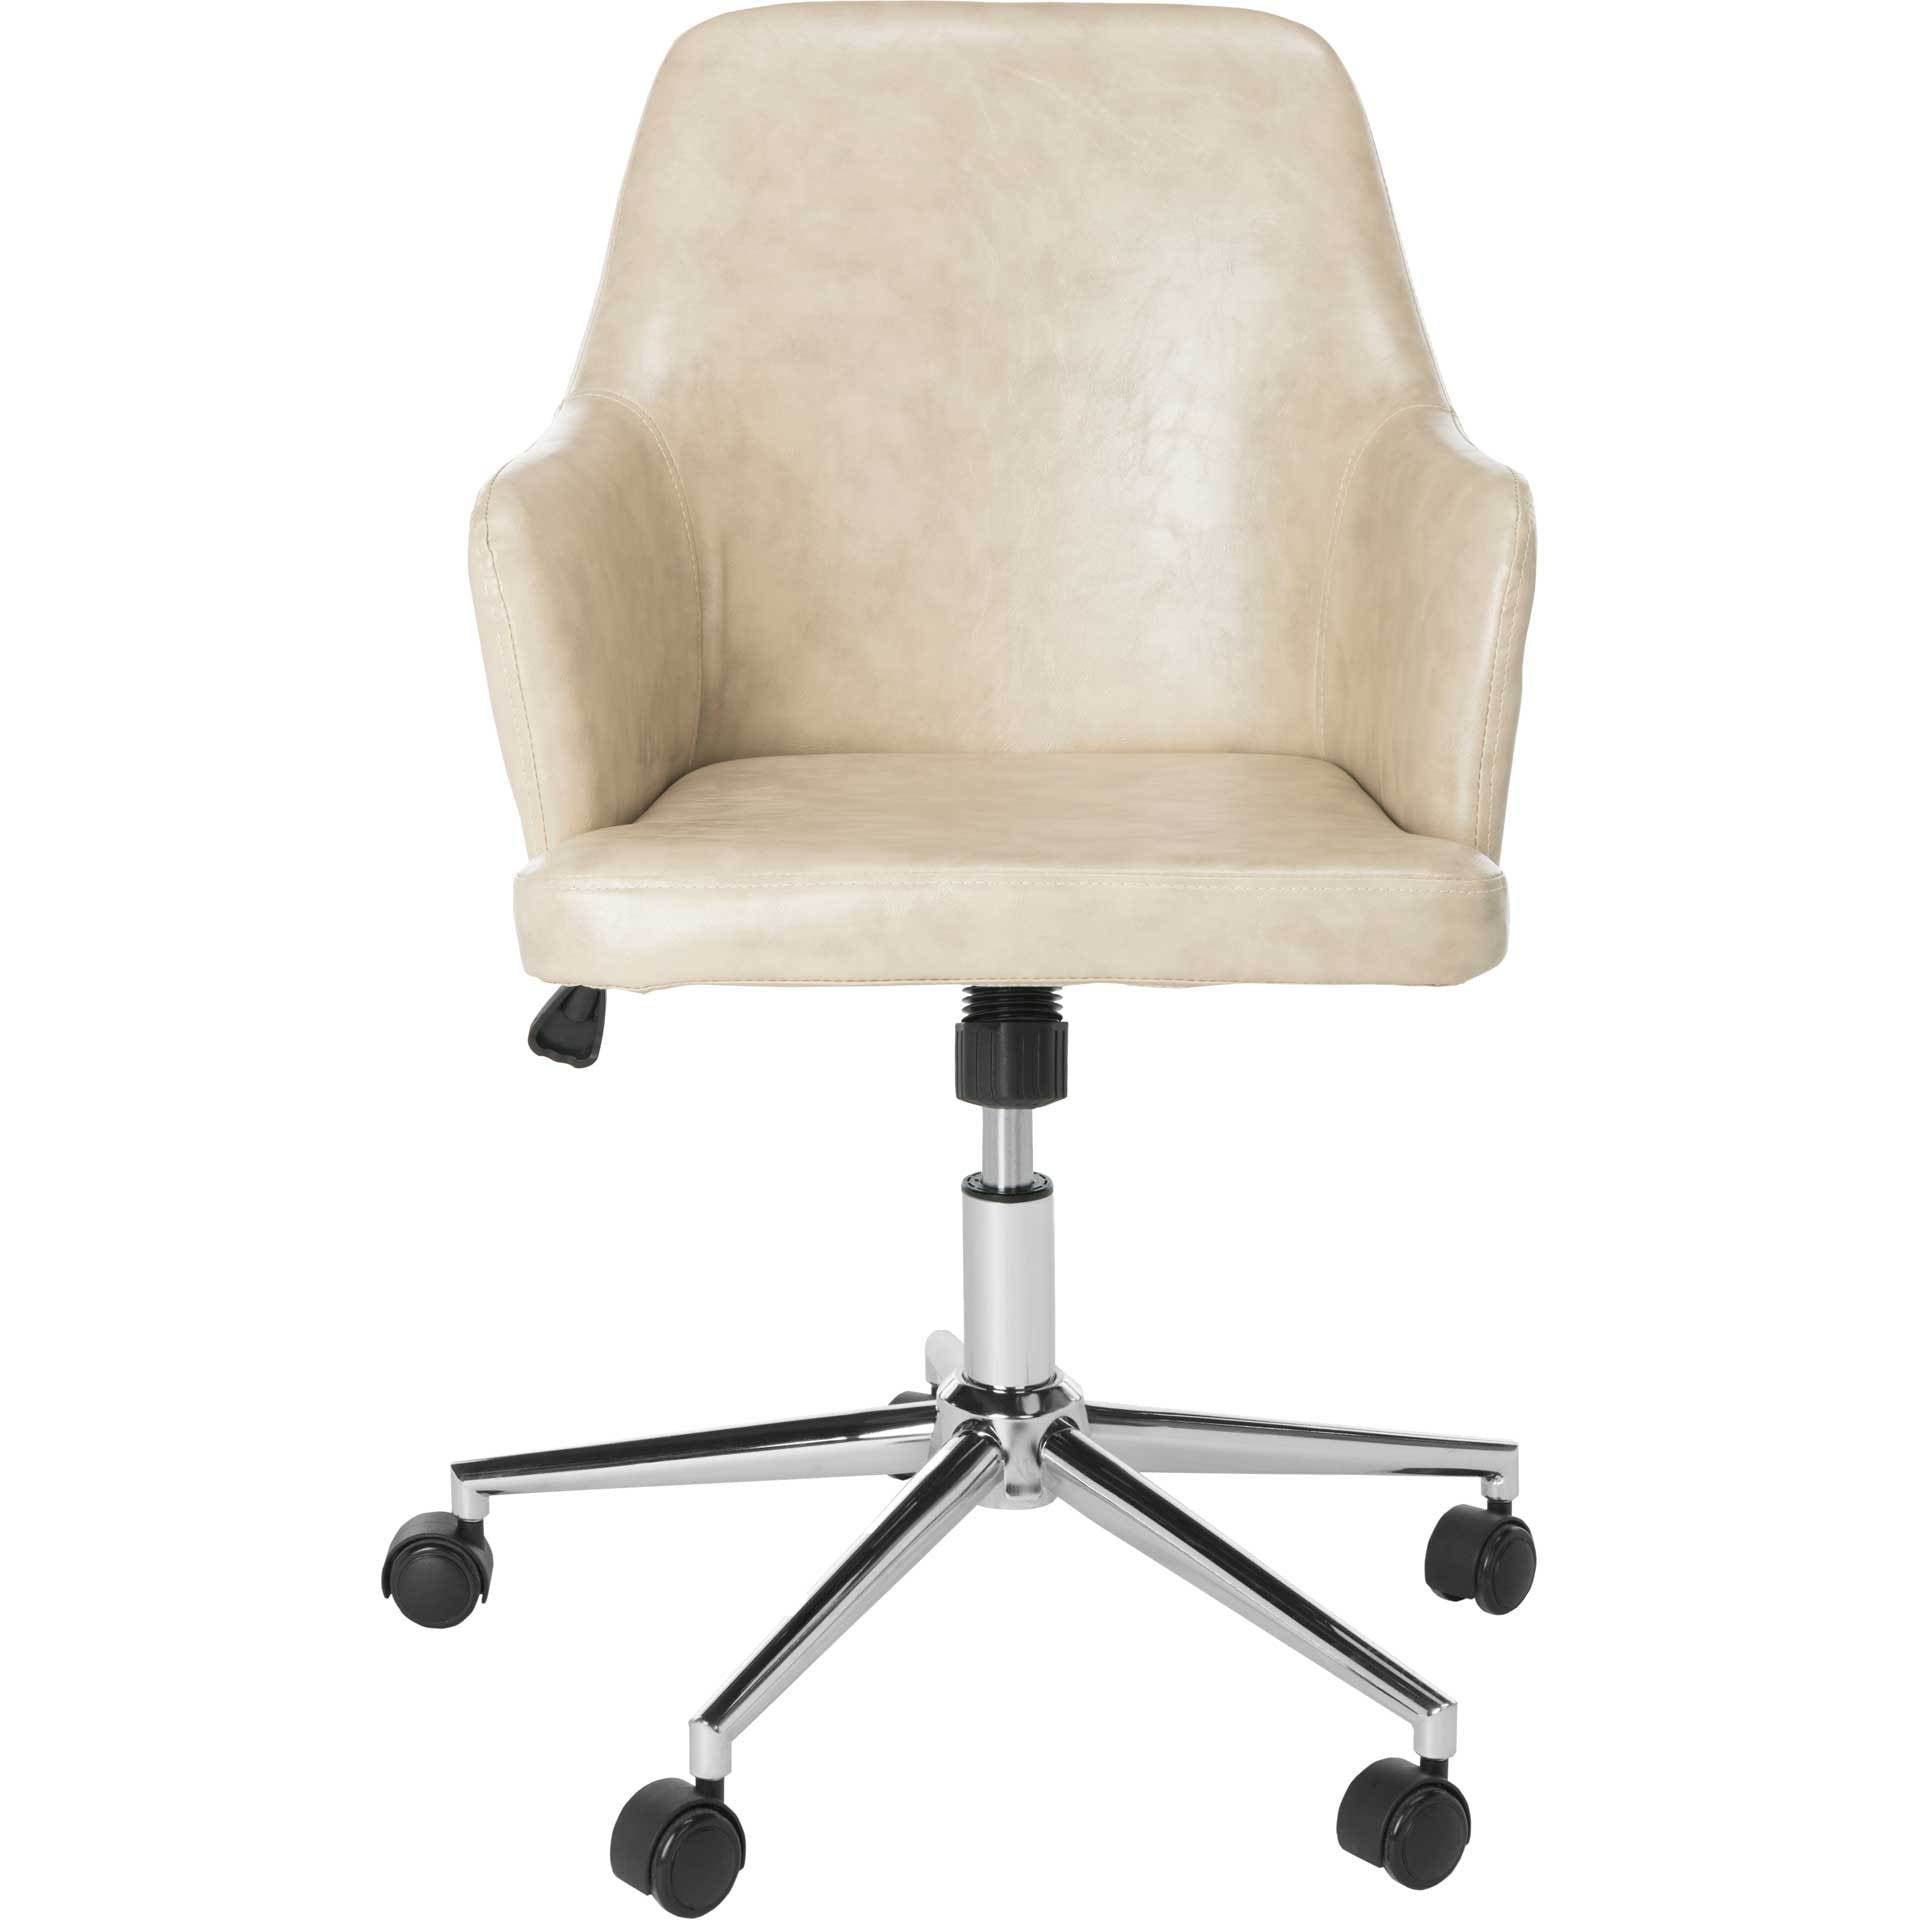 Caiden Swivel Office Chair Beige